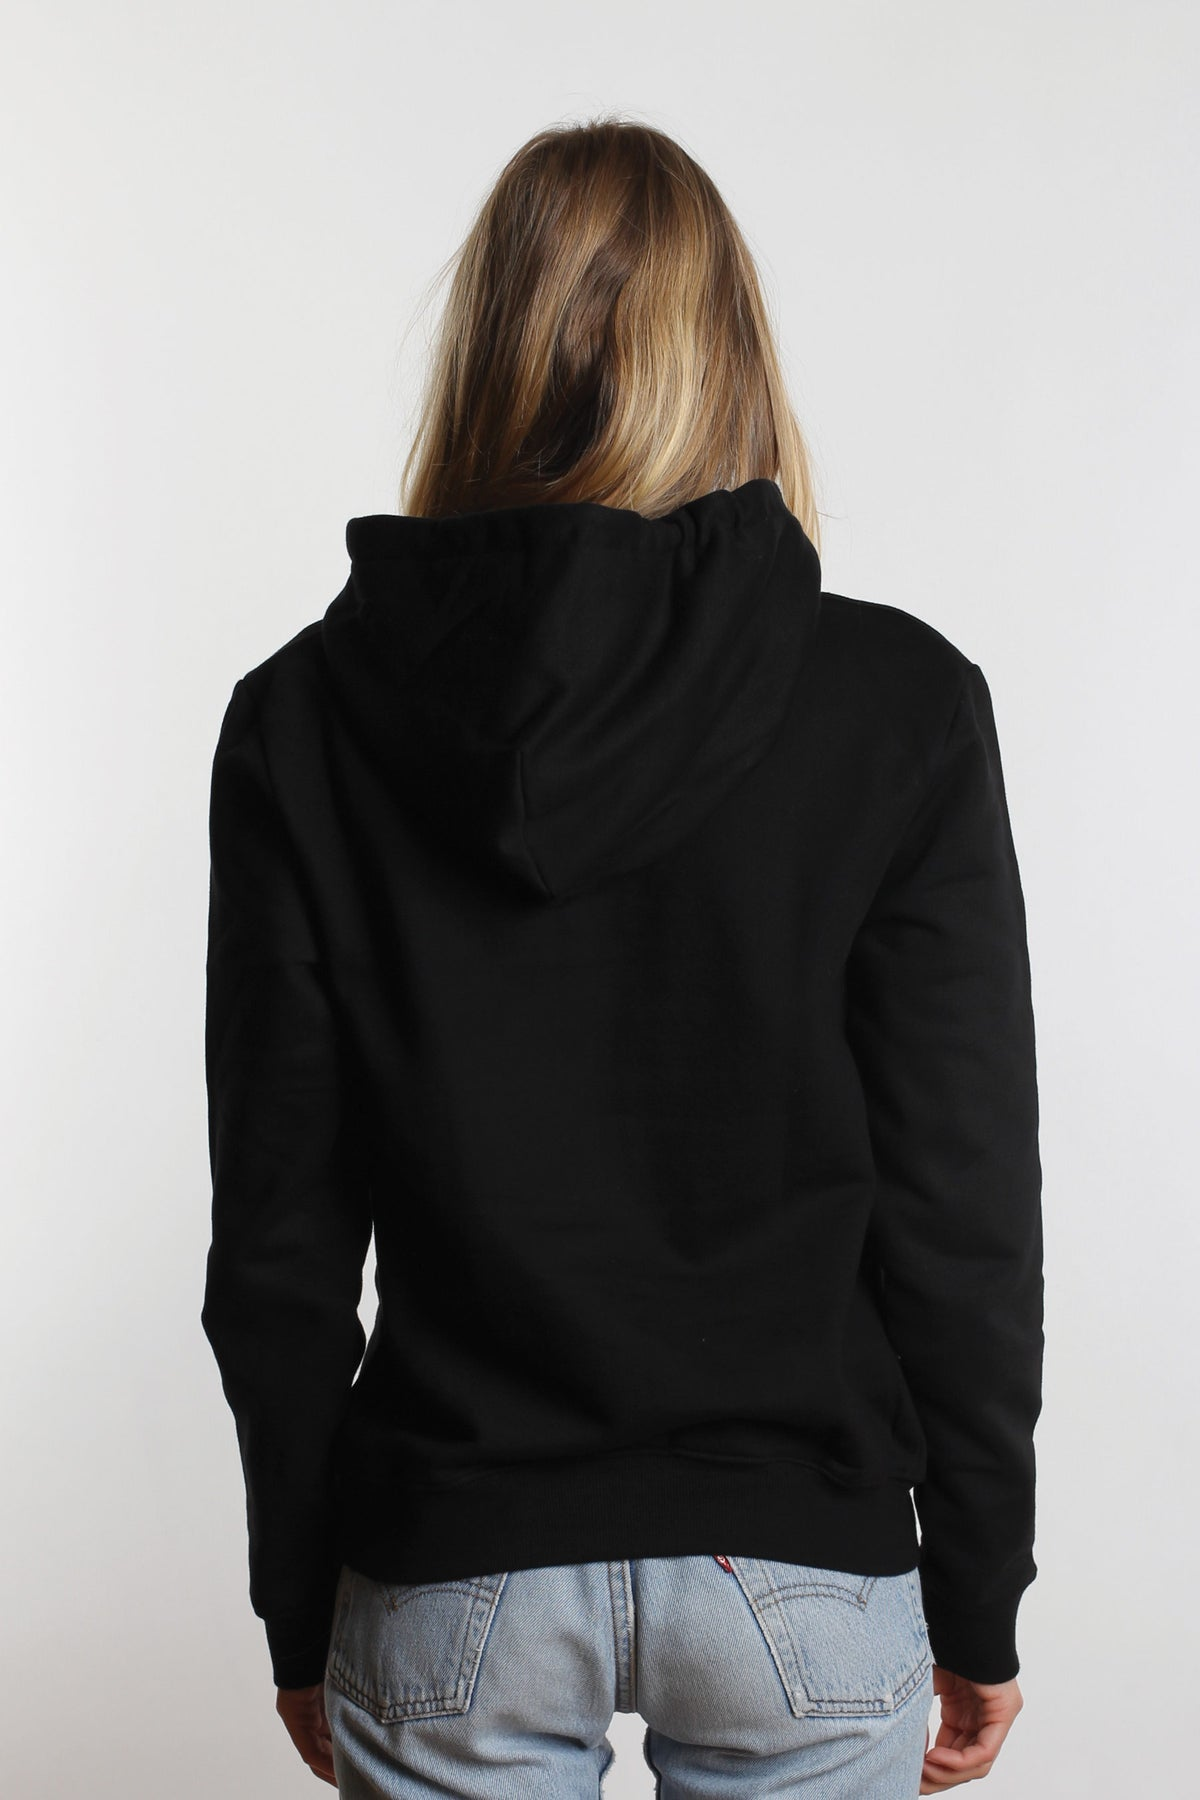 Cherry Ripe Hettie Hood - Black